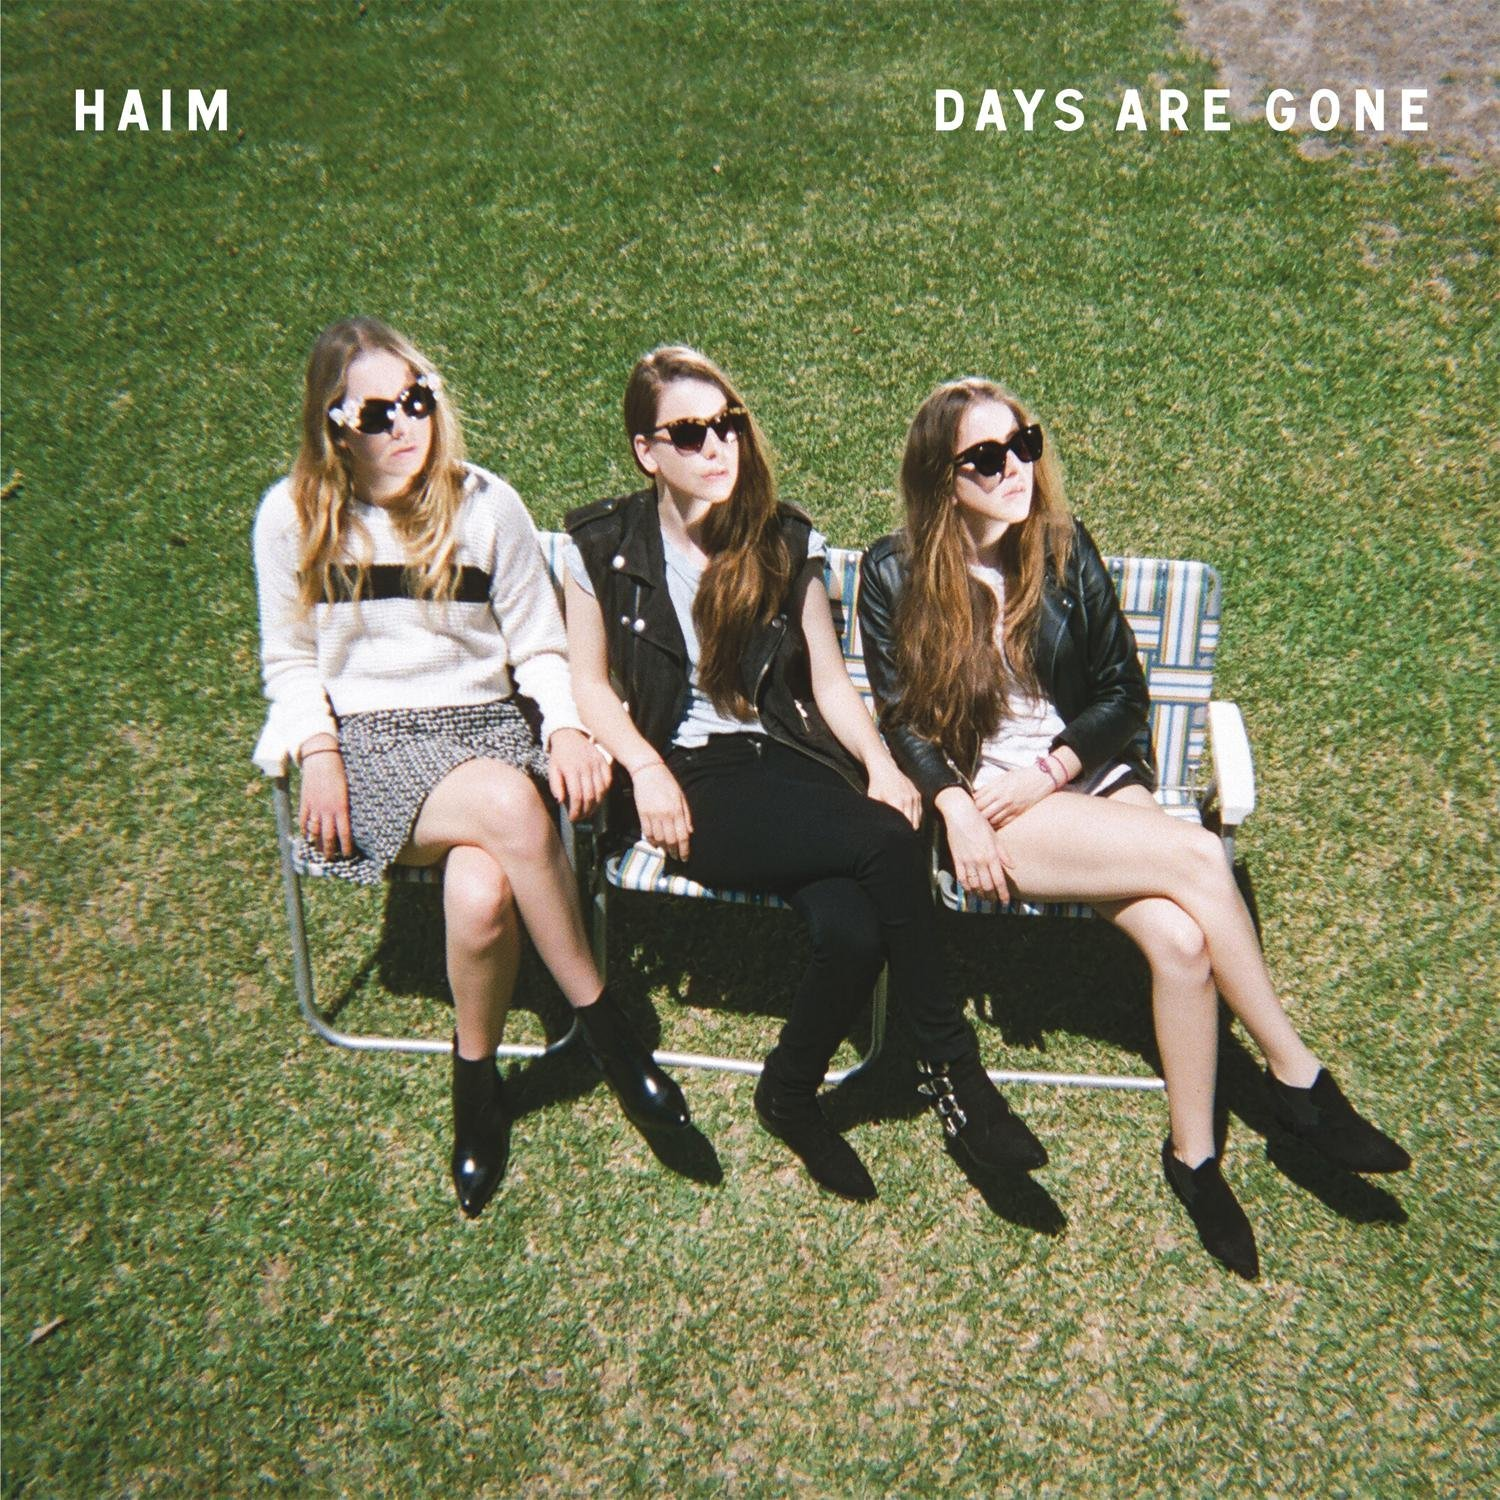 Haim Days Are Gone 2 x Vinyl New